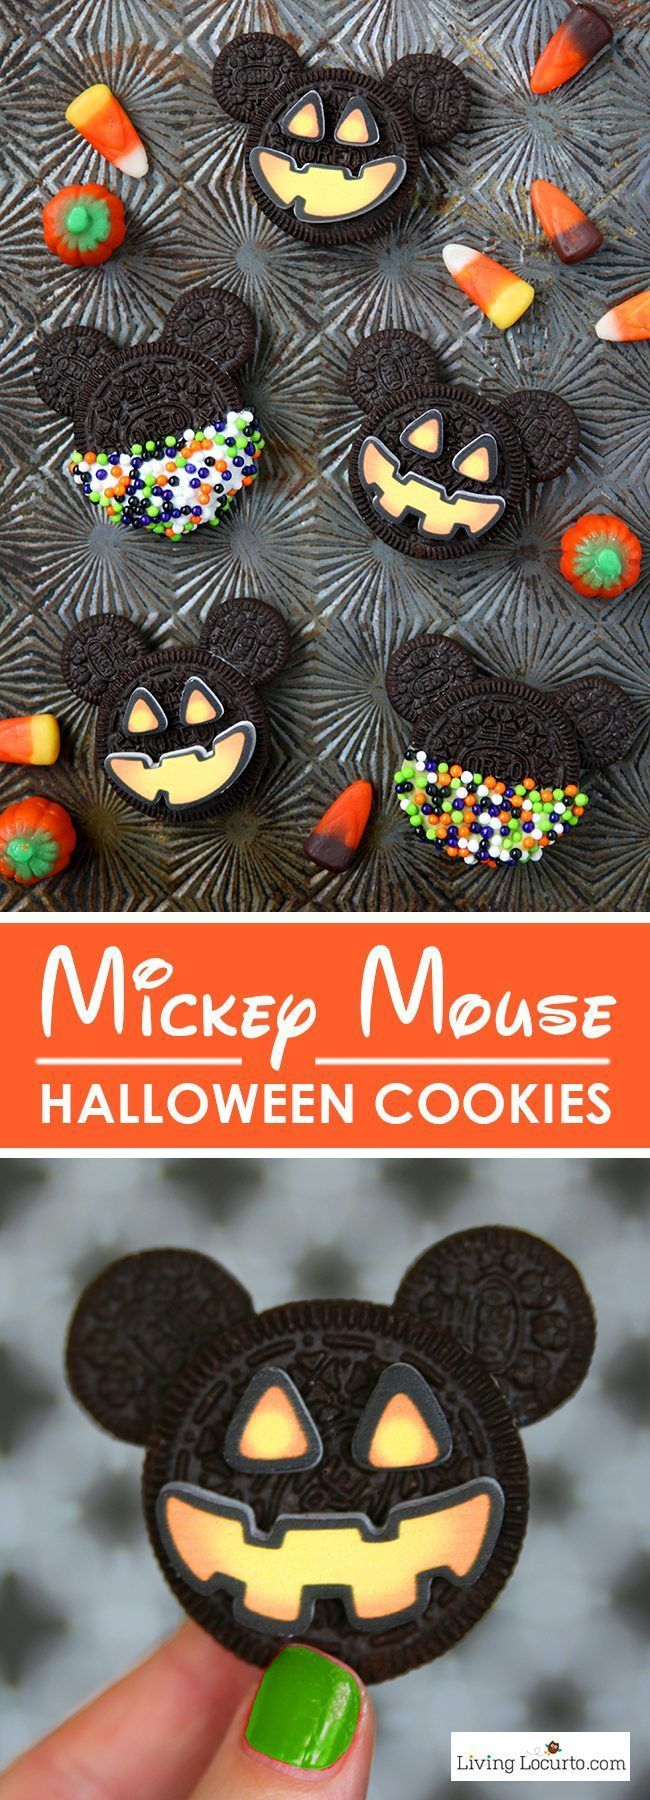 Mickey Mouse Halloween Cookies are adorable Halloween Treats! Easy no bake cookie made with Oreo cookies. Fun food jack-o-lantern Disney themed holiday party dessert recipe for kids. http://LivingLocurto.com